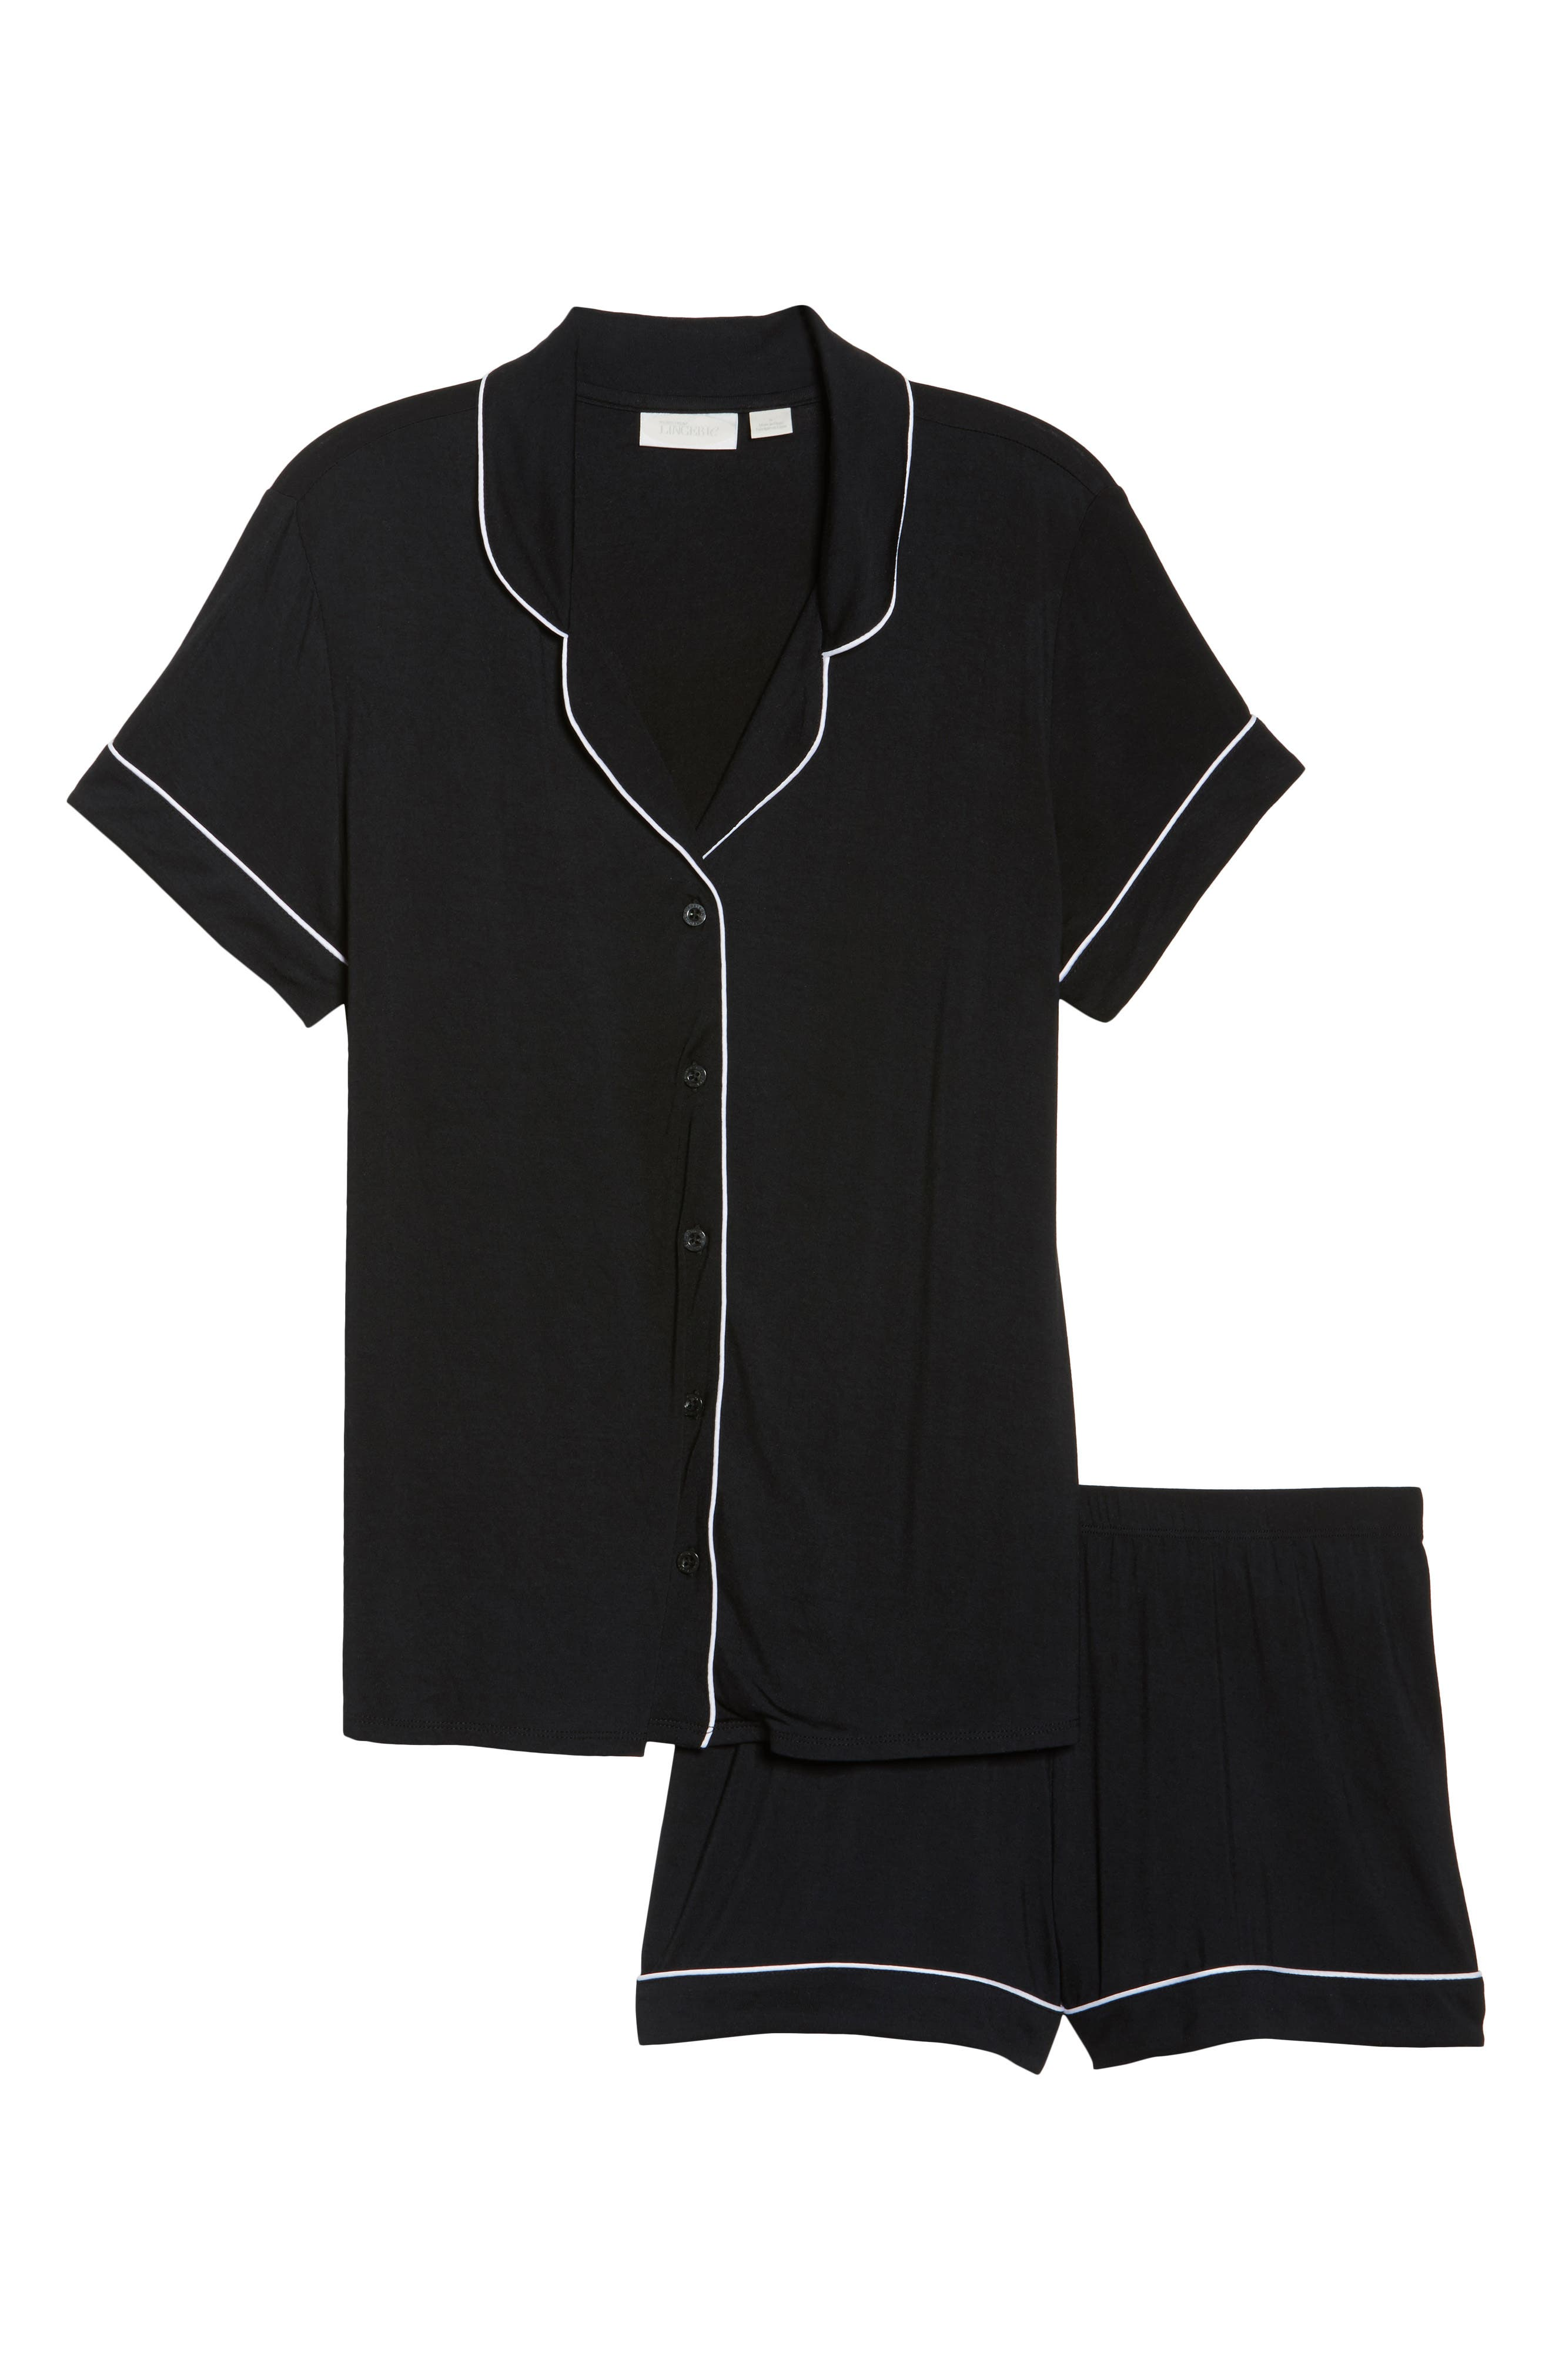 NORDSTROM LINGERIE, Moonlight Short Pajamas, Main thumbnail 1, color, BLACK